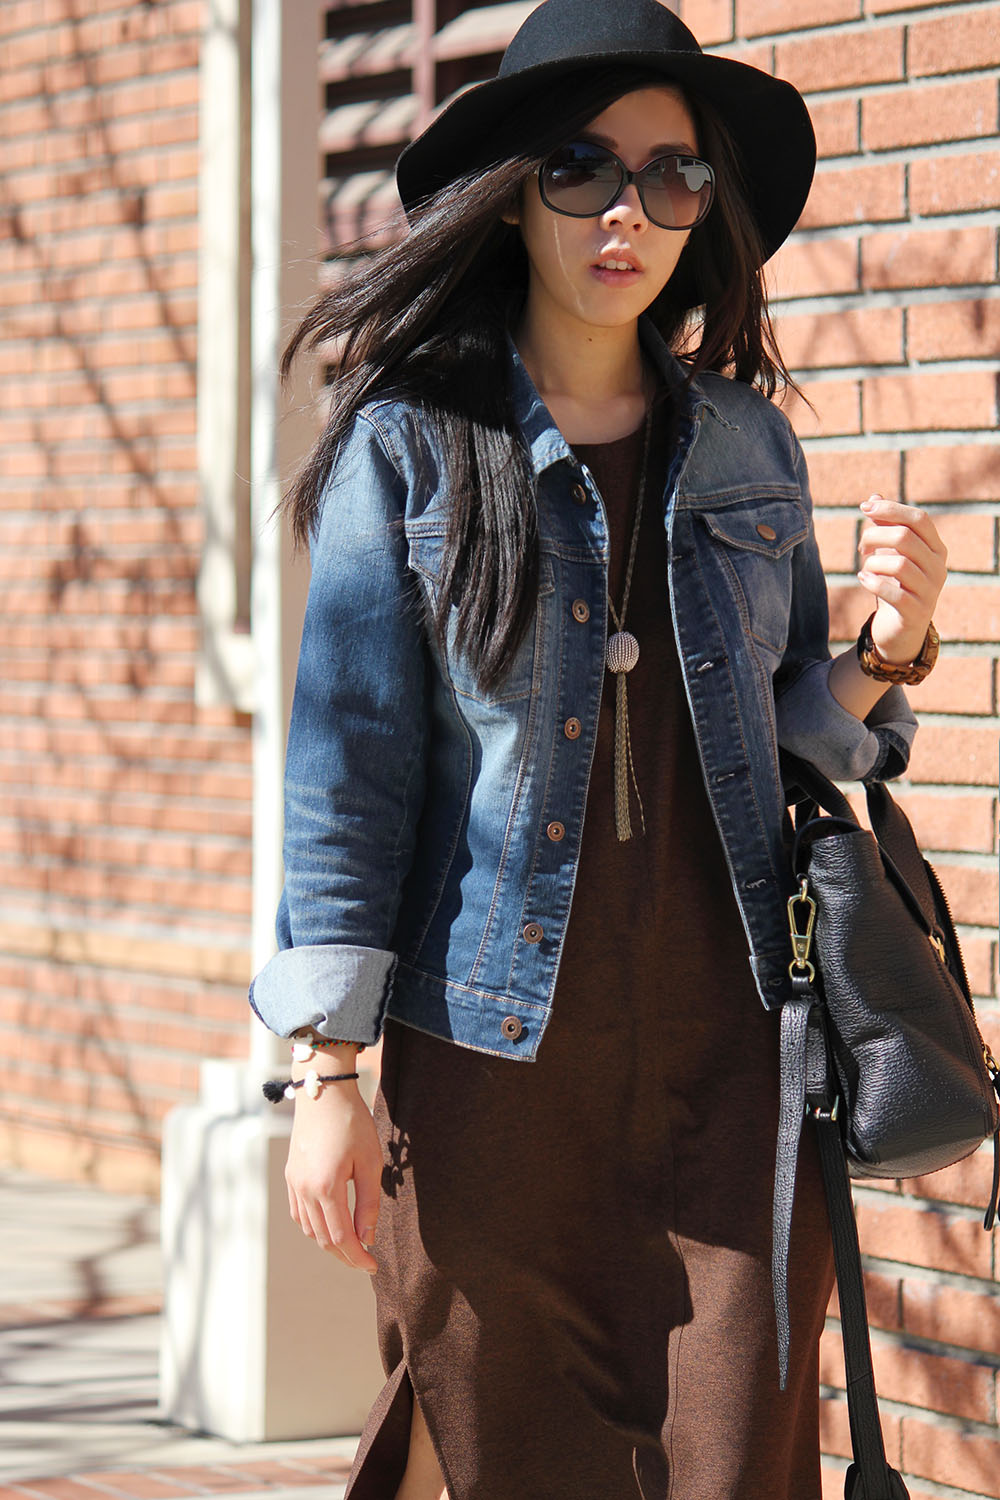 Adrienne Nguyen - Forever 21 Maxi with Jean Jacket from Nordstrom - Casual Boho Look